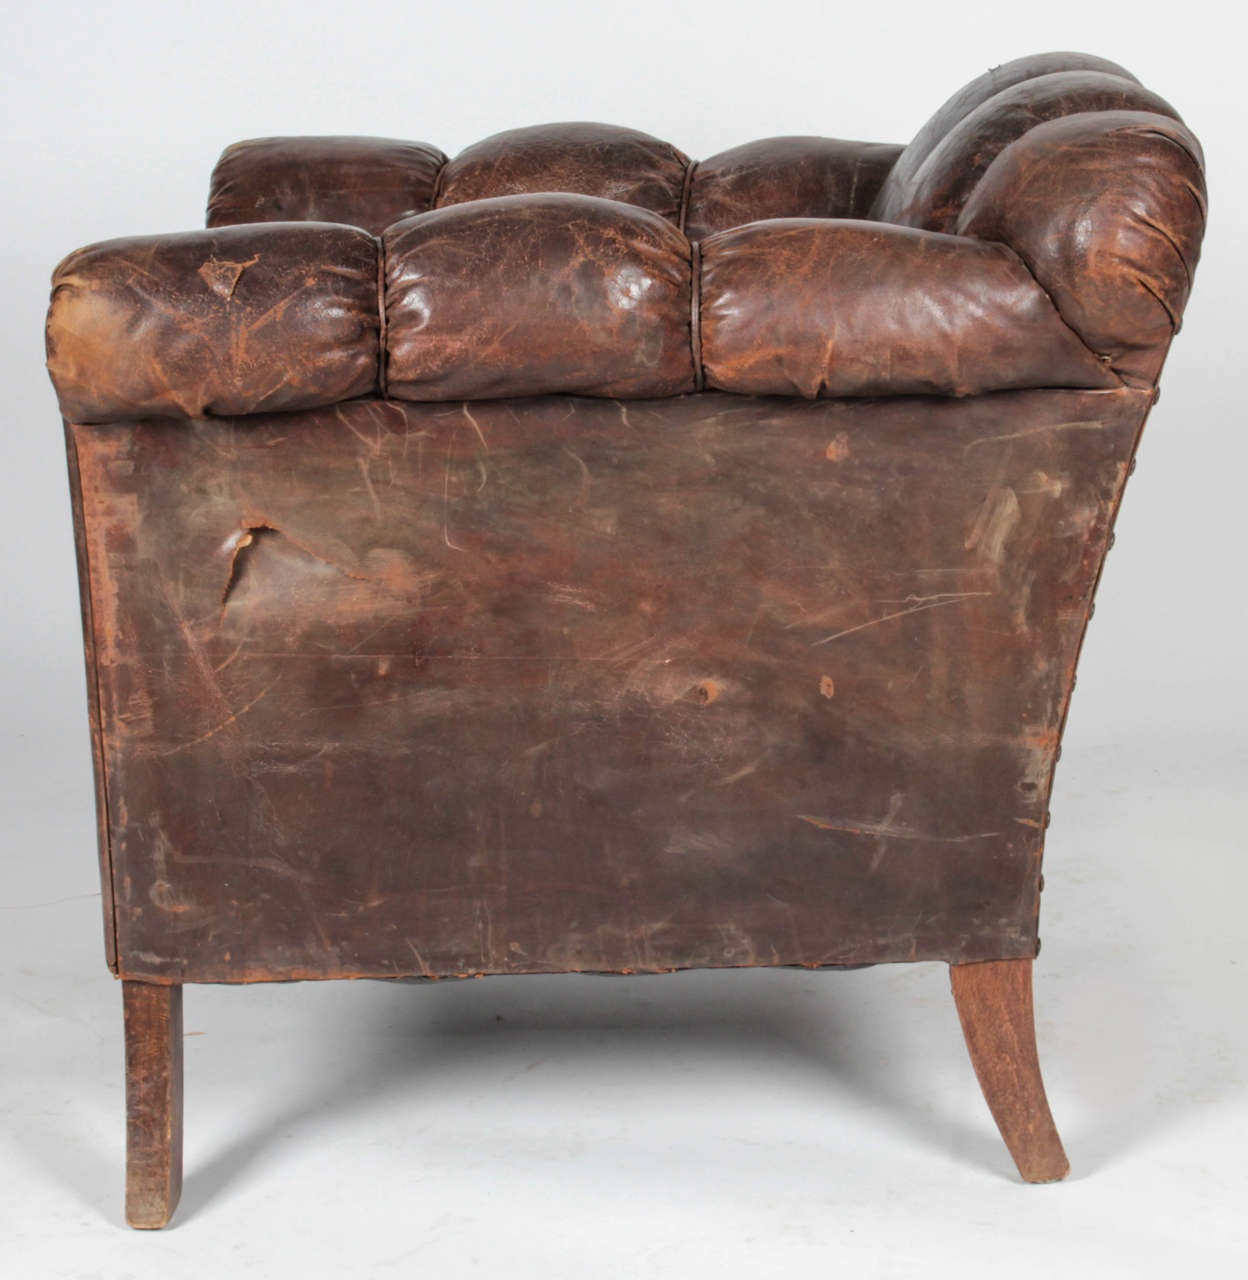 leather club chairs for sale medical office waiting room 20th century distressed vertical tufted